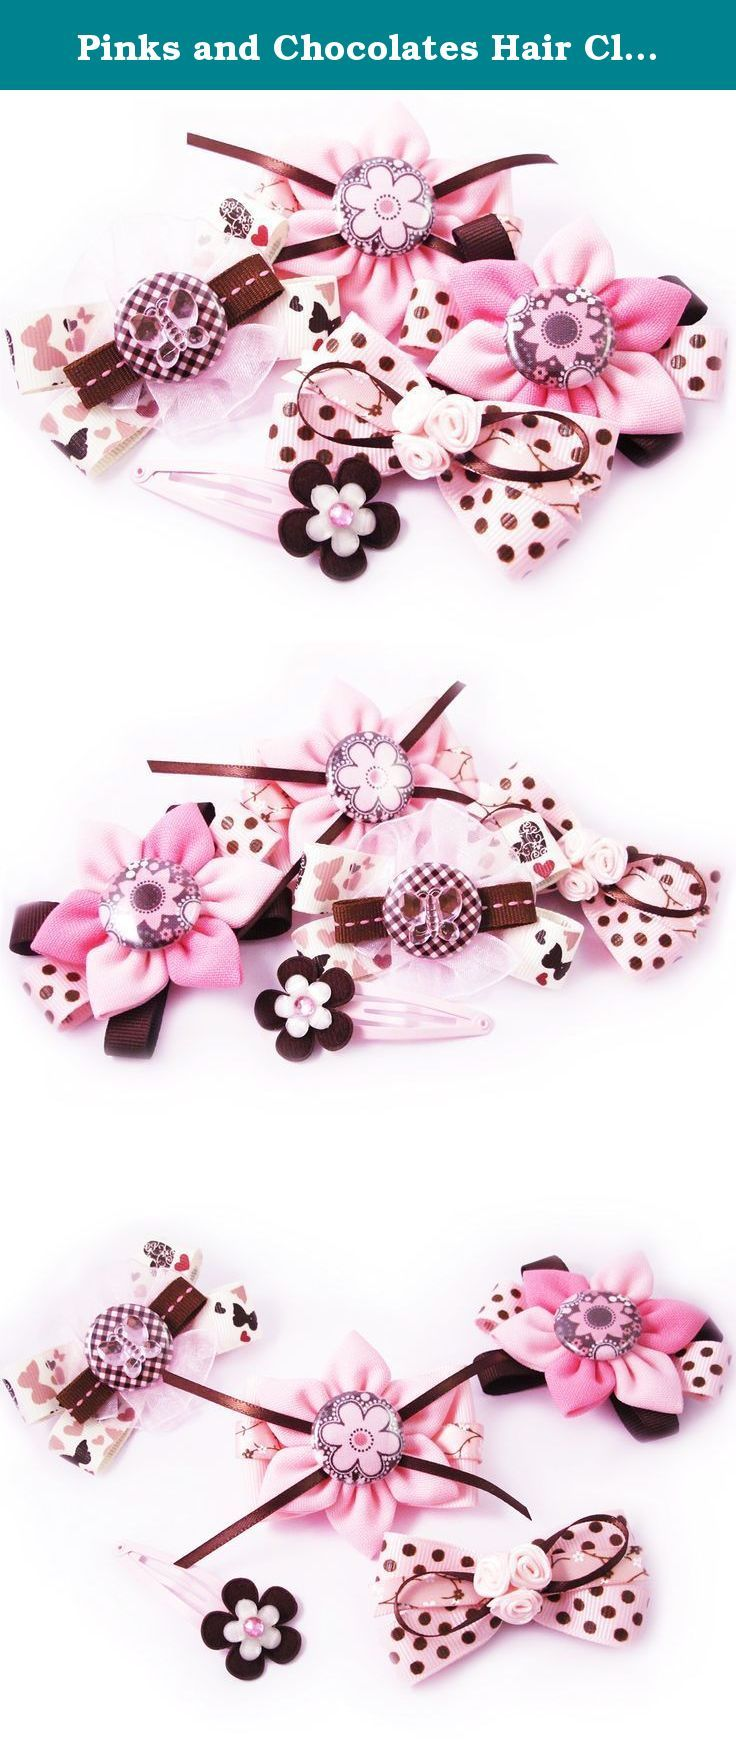 Pinks and Chocolates Hair Clip Set. Coordinate outfits with these adorable hair clips! Perfect for kids, teens and adults.